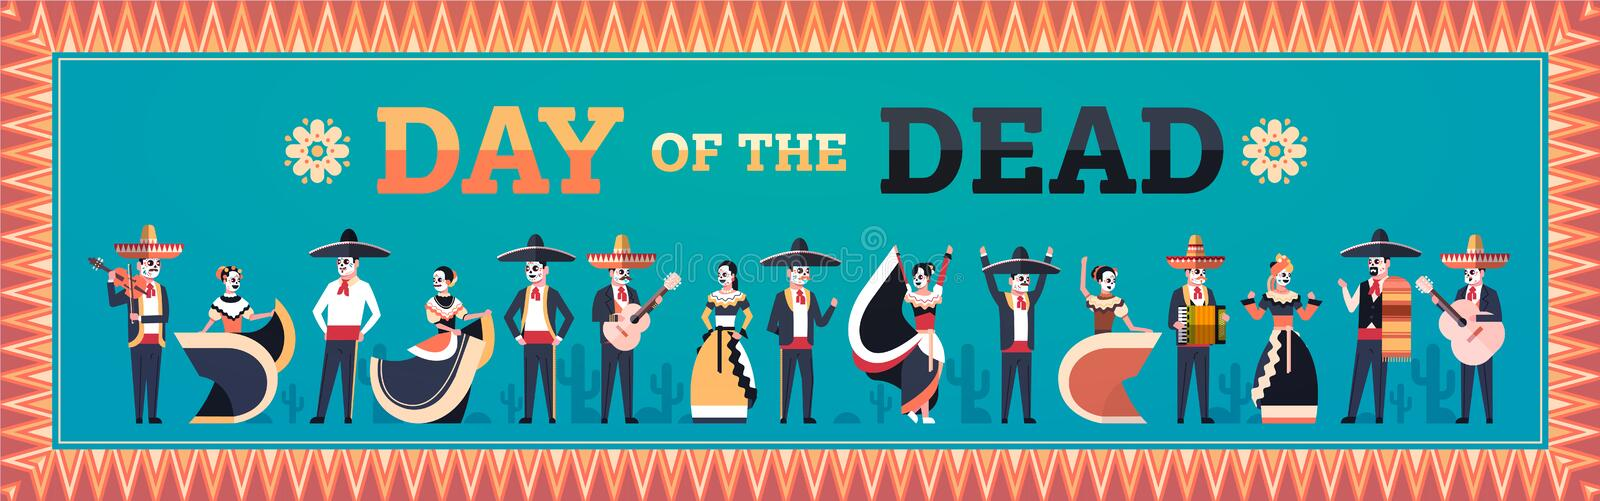 Day of dead traditional mexican halloween dia de los muertos holiday party decoration men women wearing skeleton masks royalty free illustration